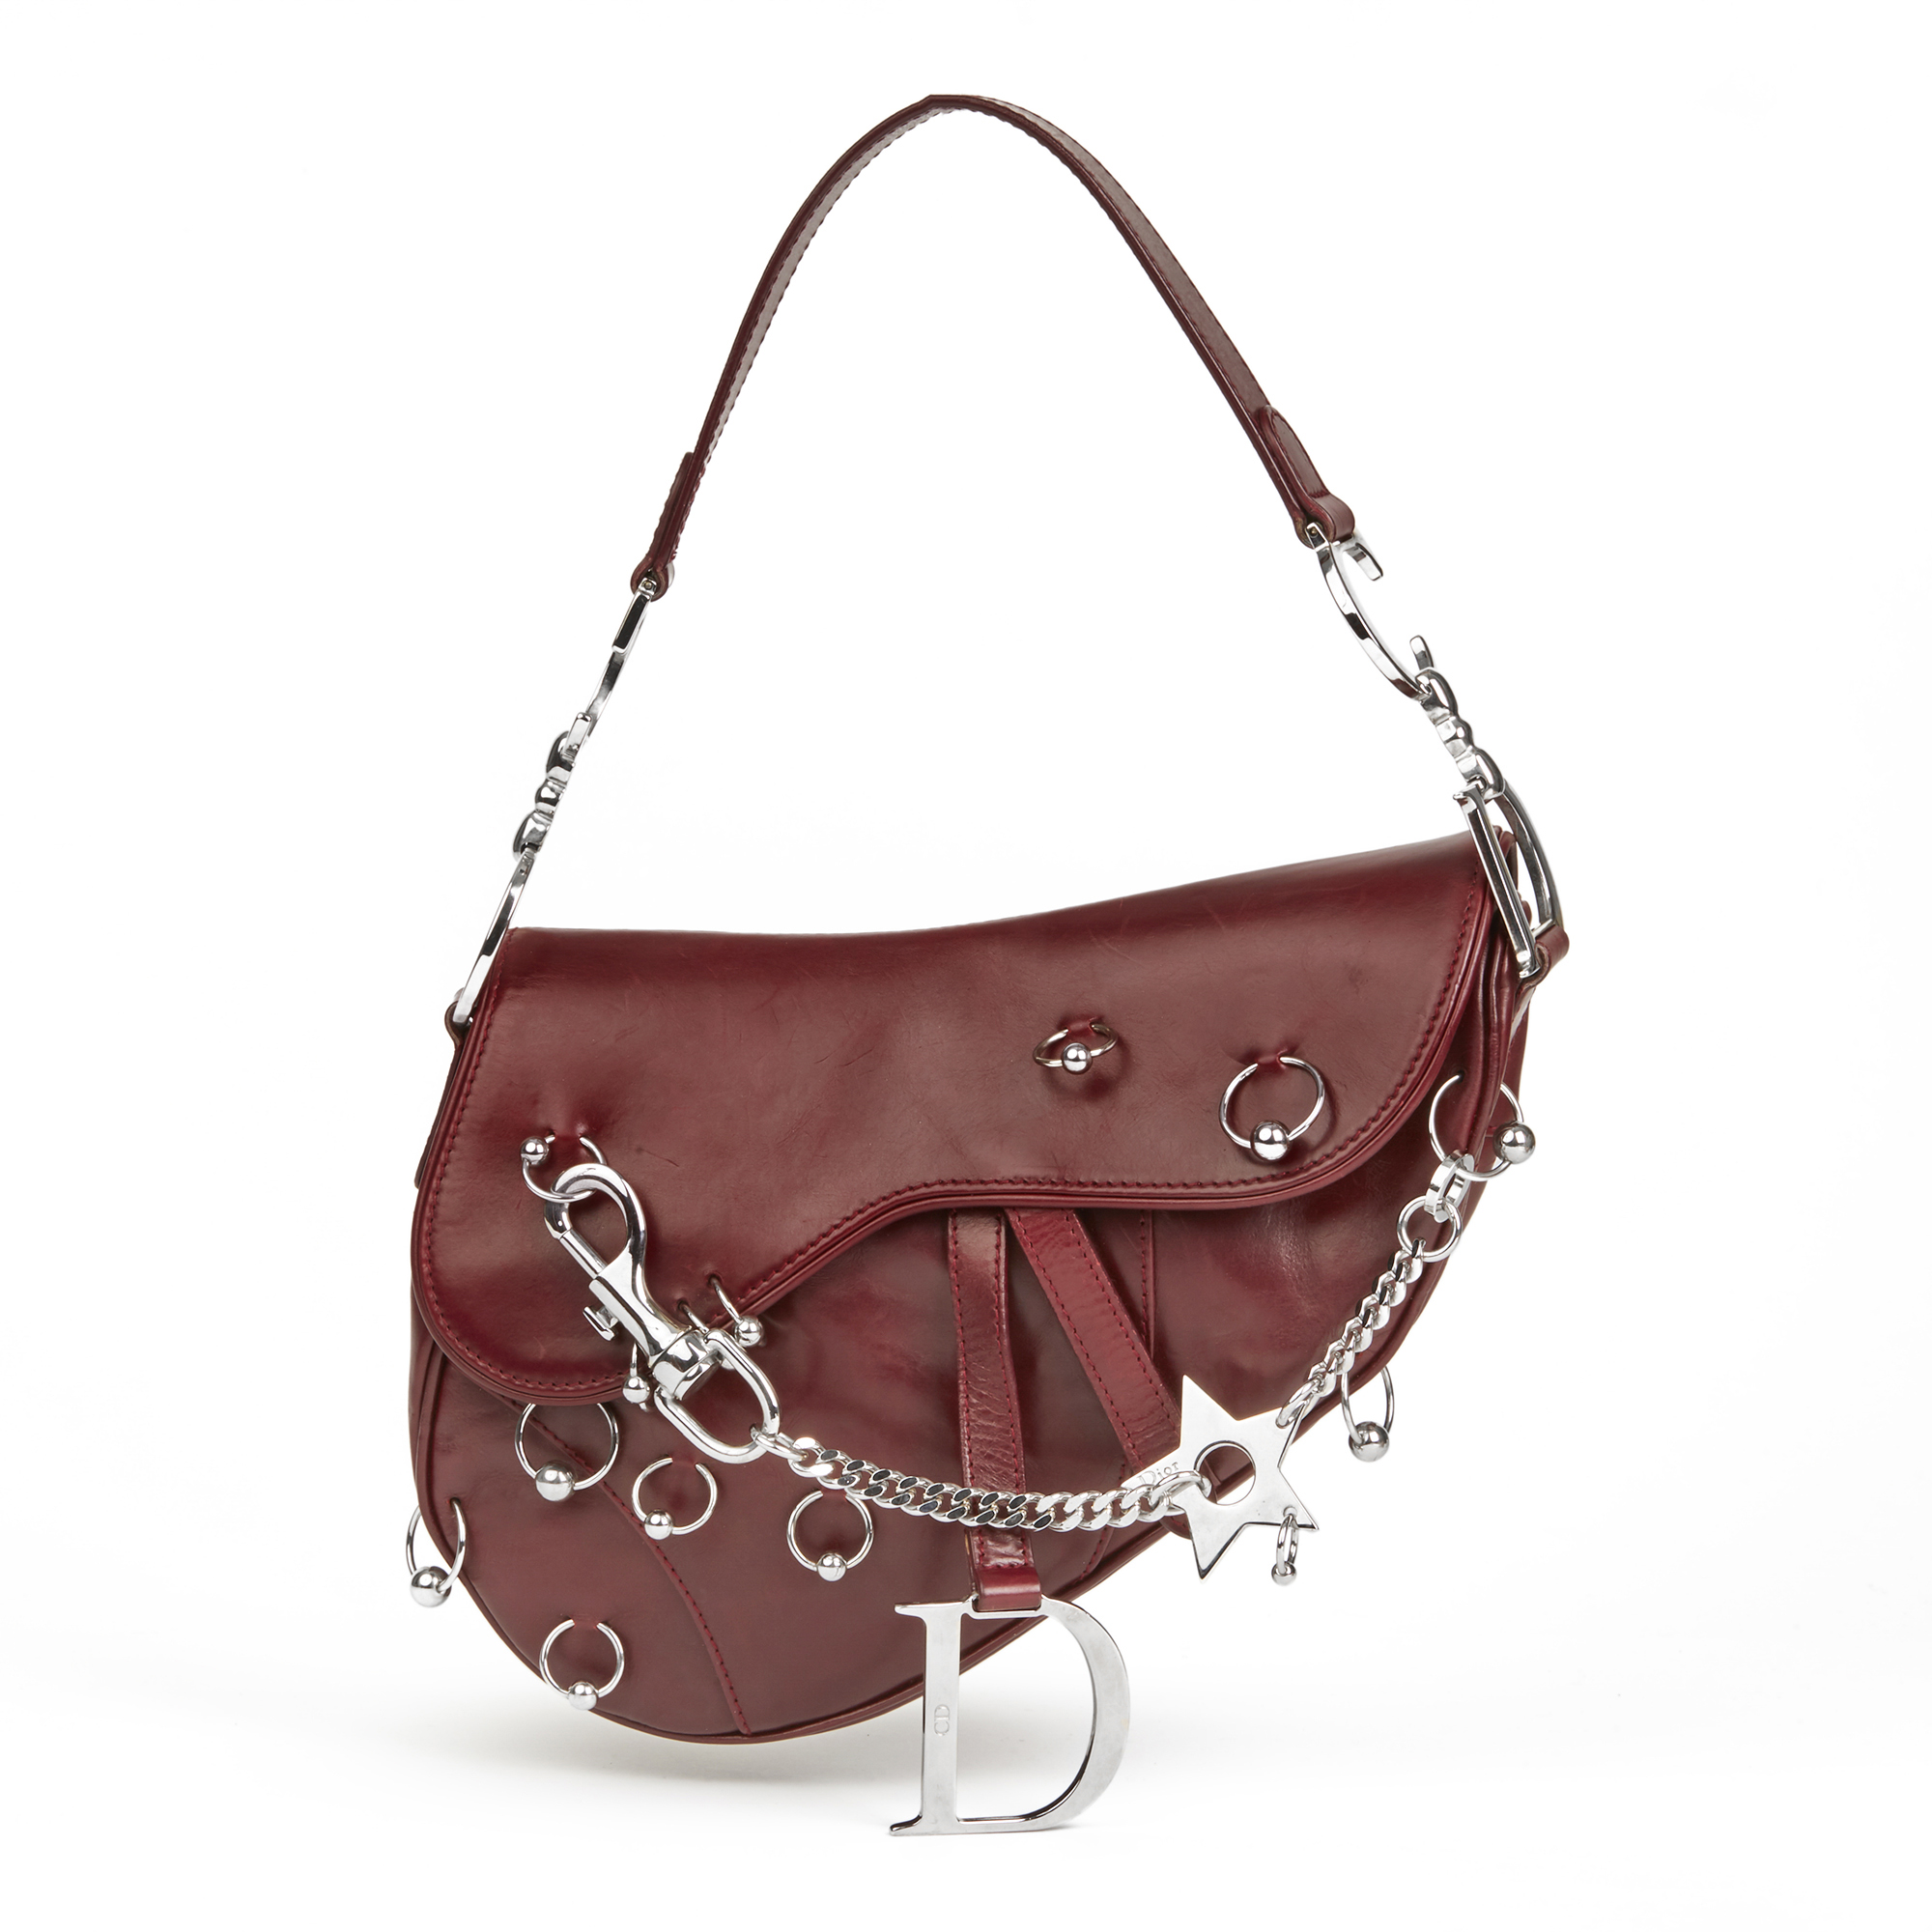 6e251c2a569e Christian Dior Burgundy Smooth Calfskin Leather Hardcore Piercing Saddle Bag